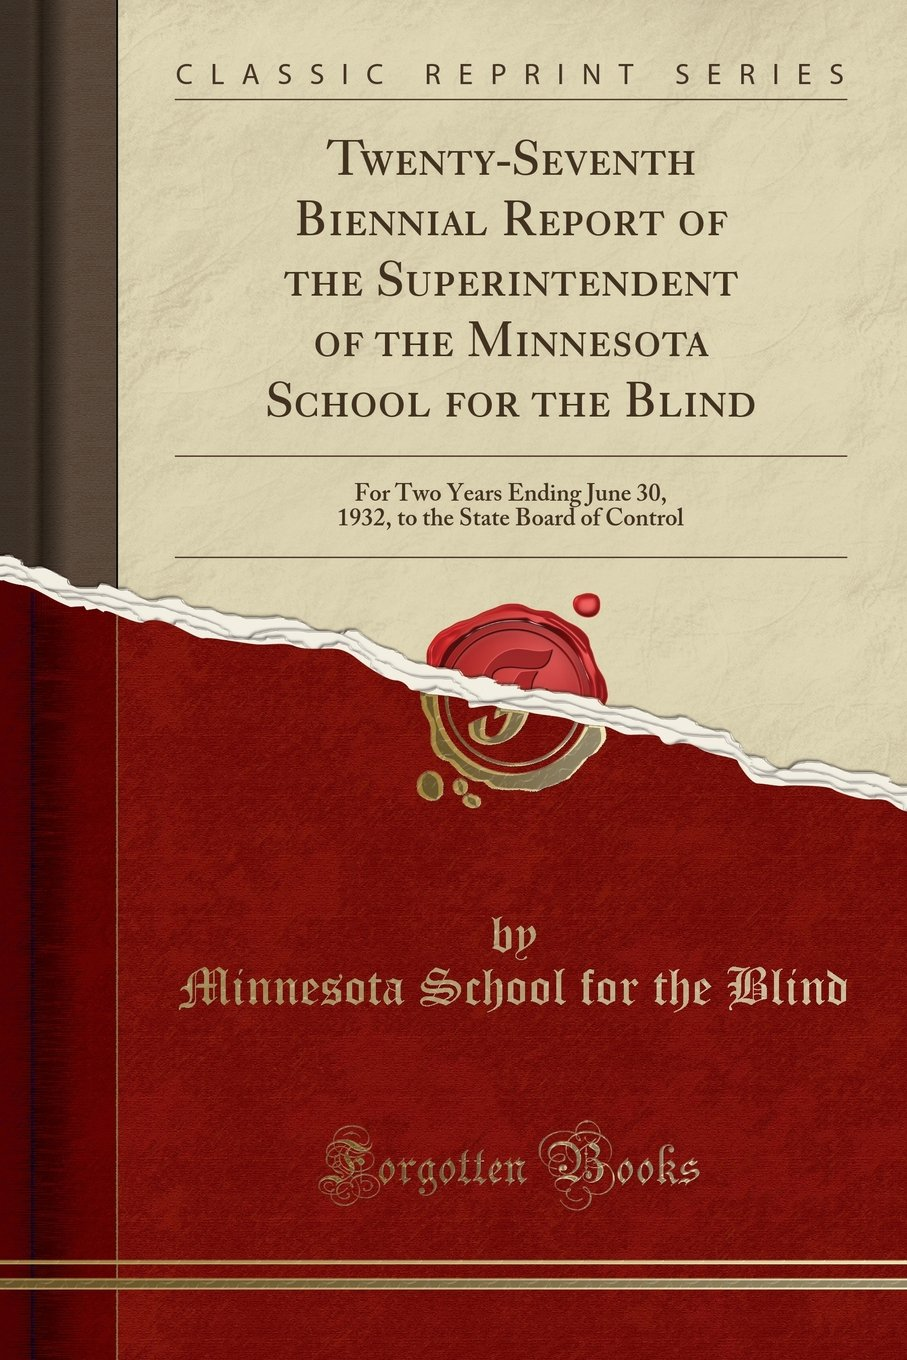 Download Twenty-Seventh Biennial Report of the Superintendent of the Minnesota School for the Blind: For Two Years Ending June 30, 1932, to the State Board of Control (Classic Reprint) pdf epub